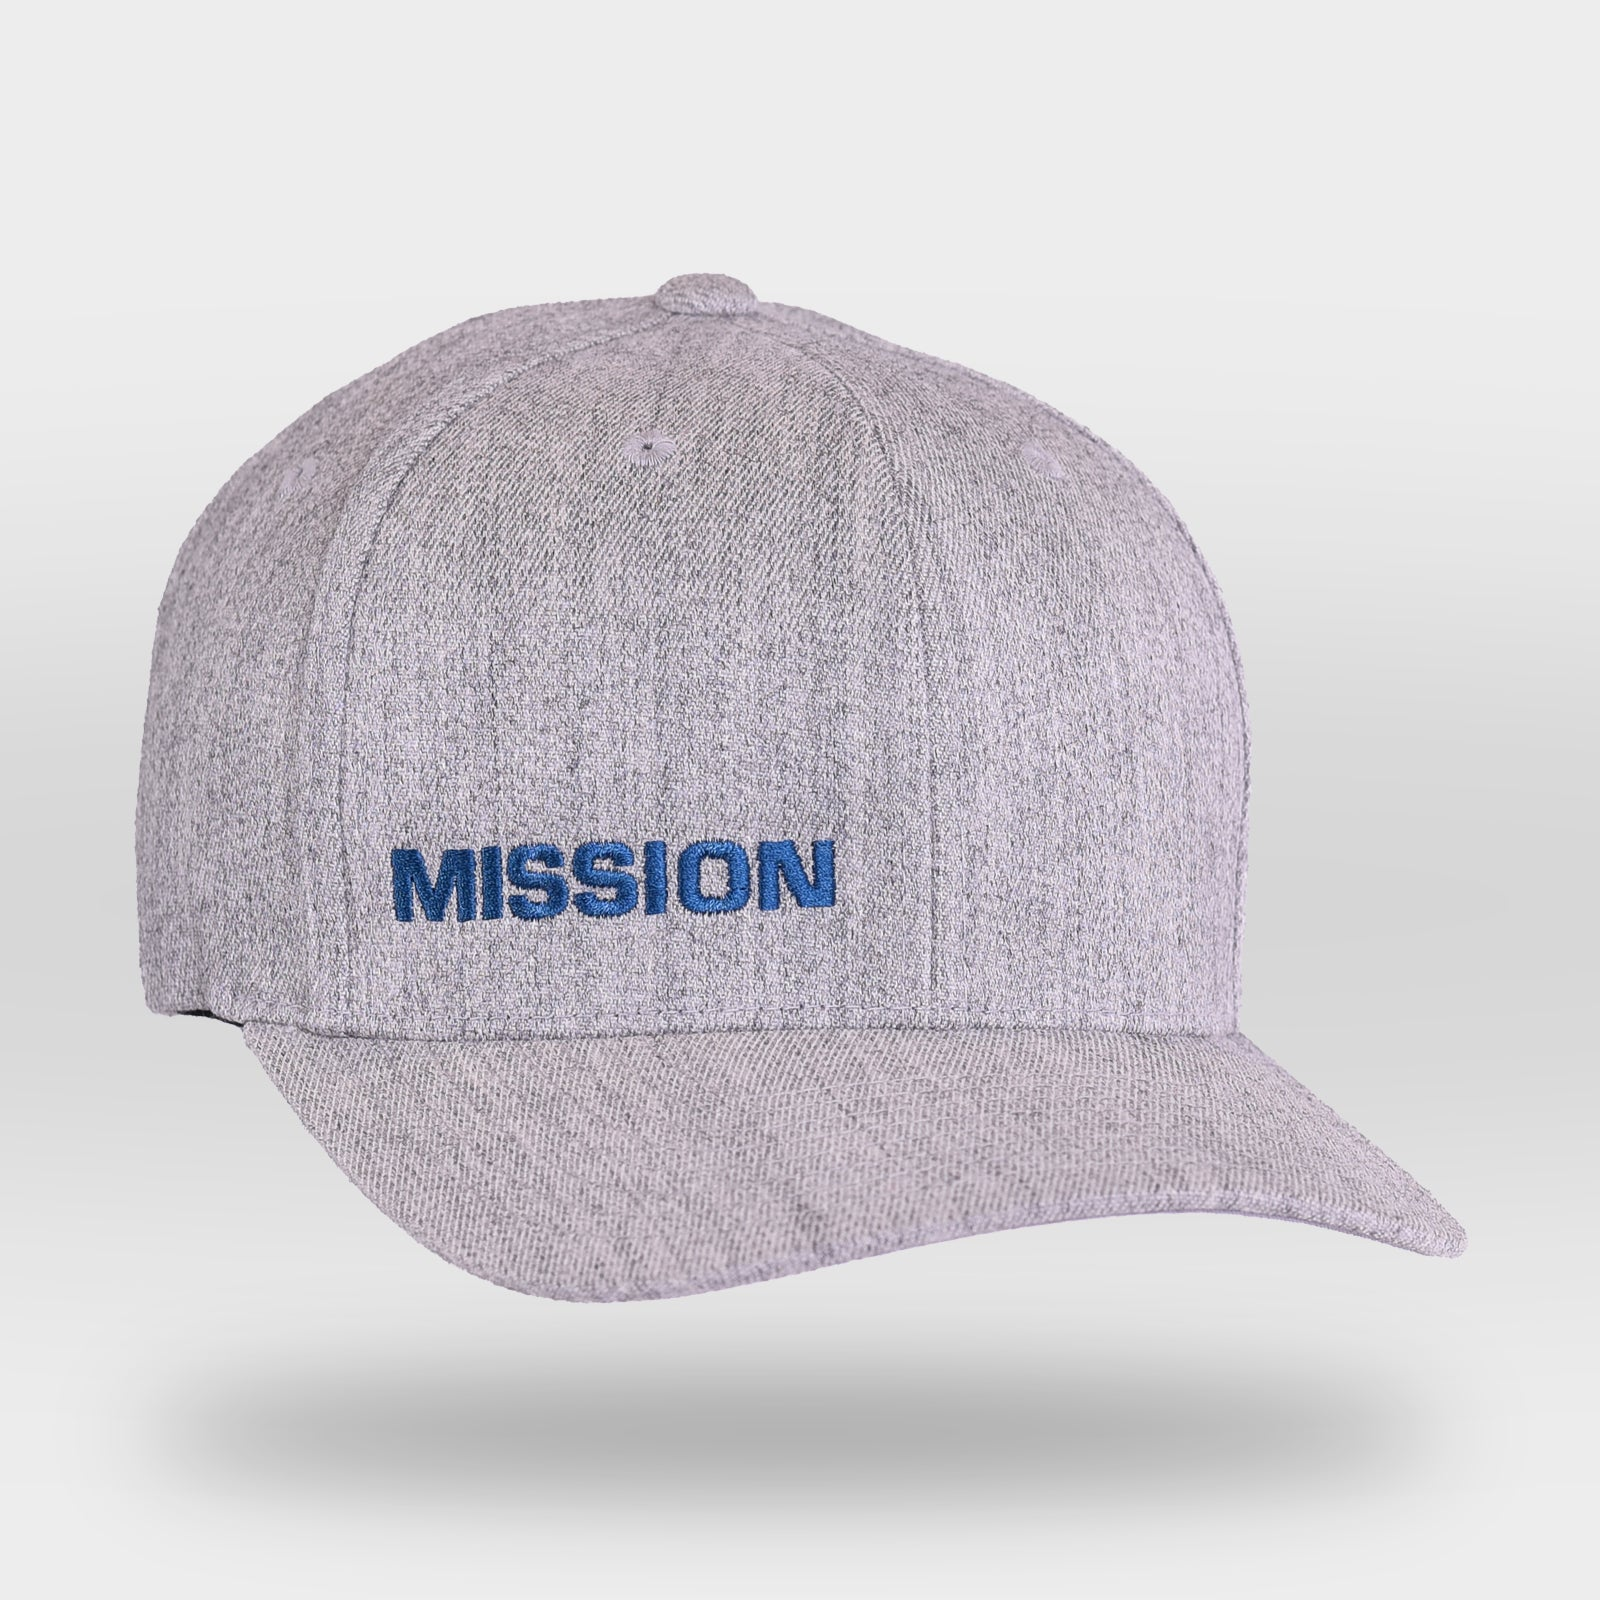 MISSION :: Flexfit Hats